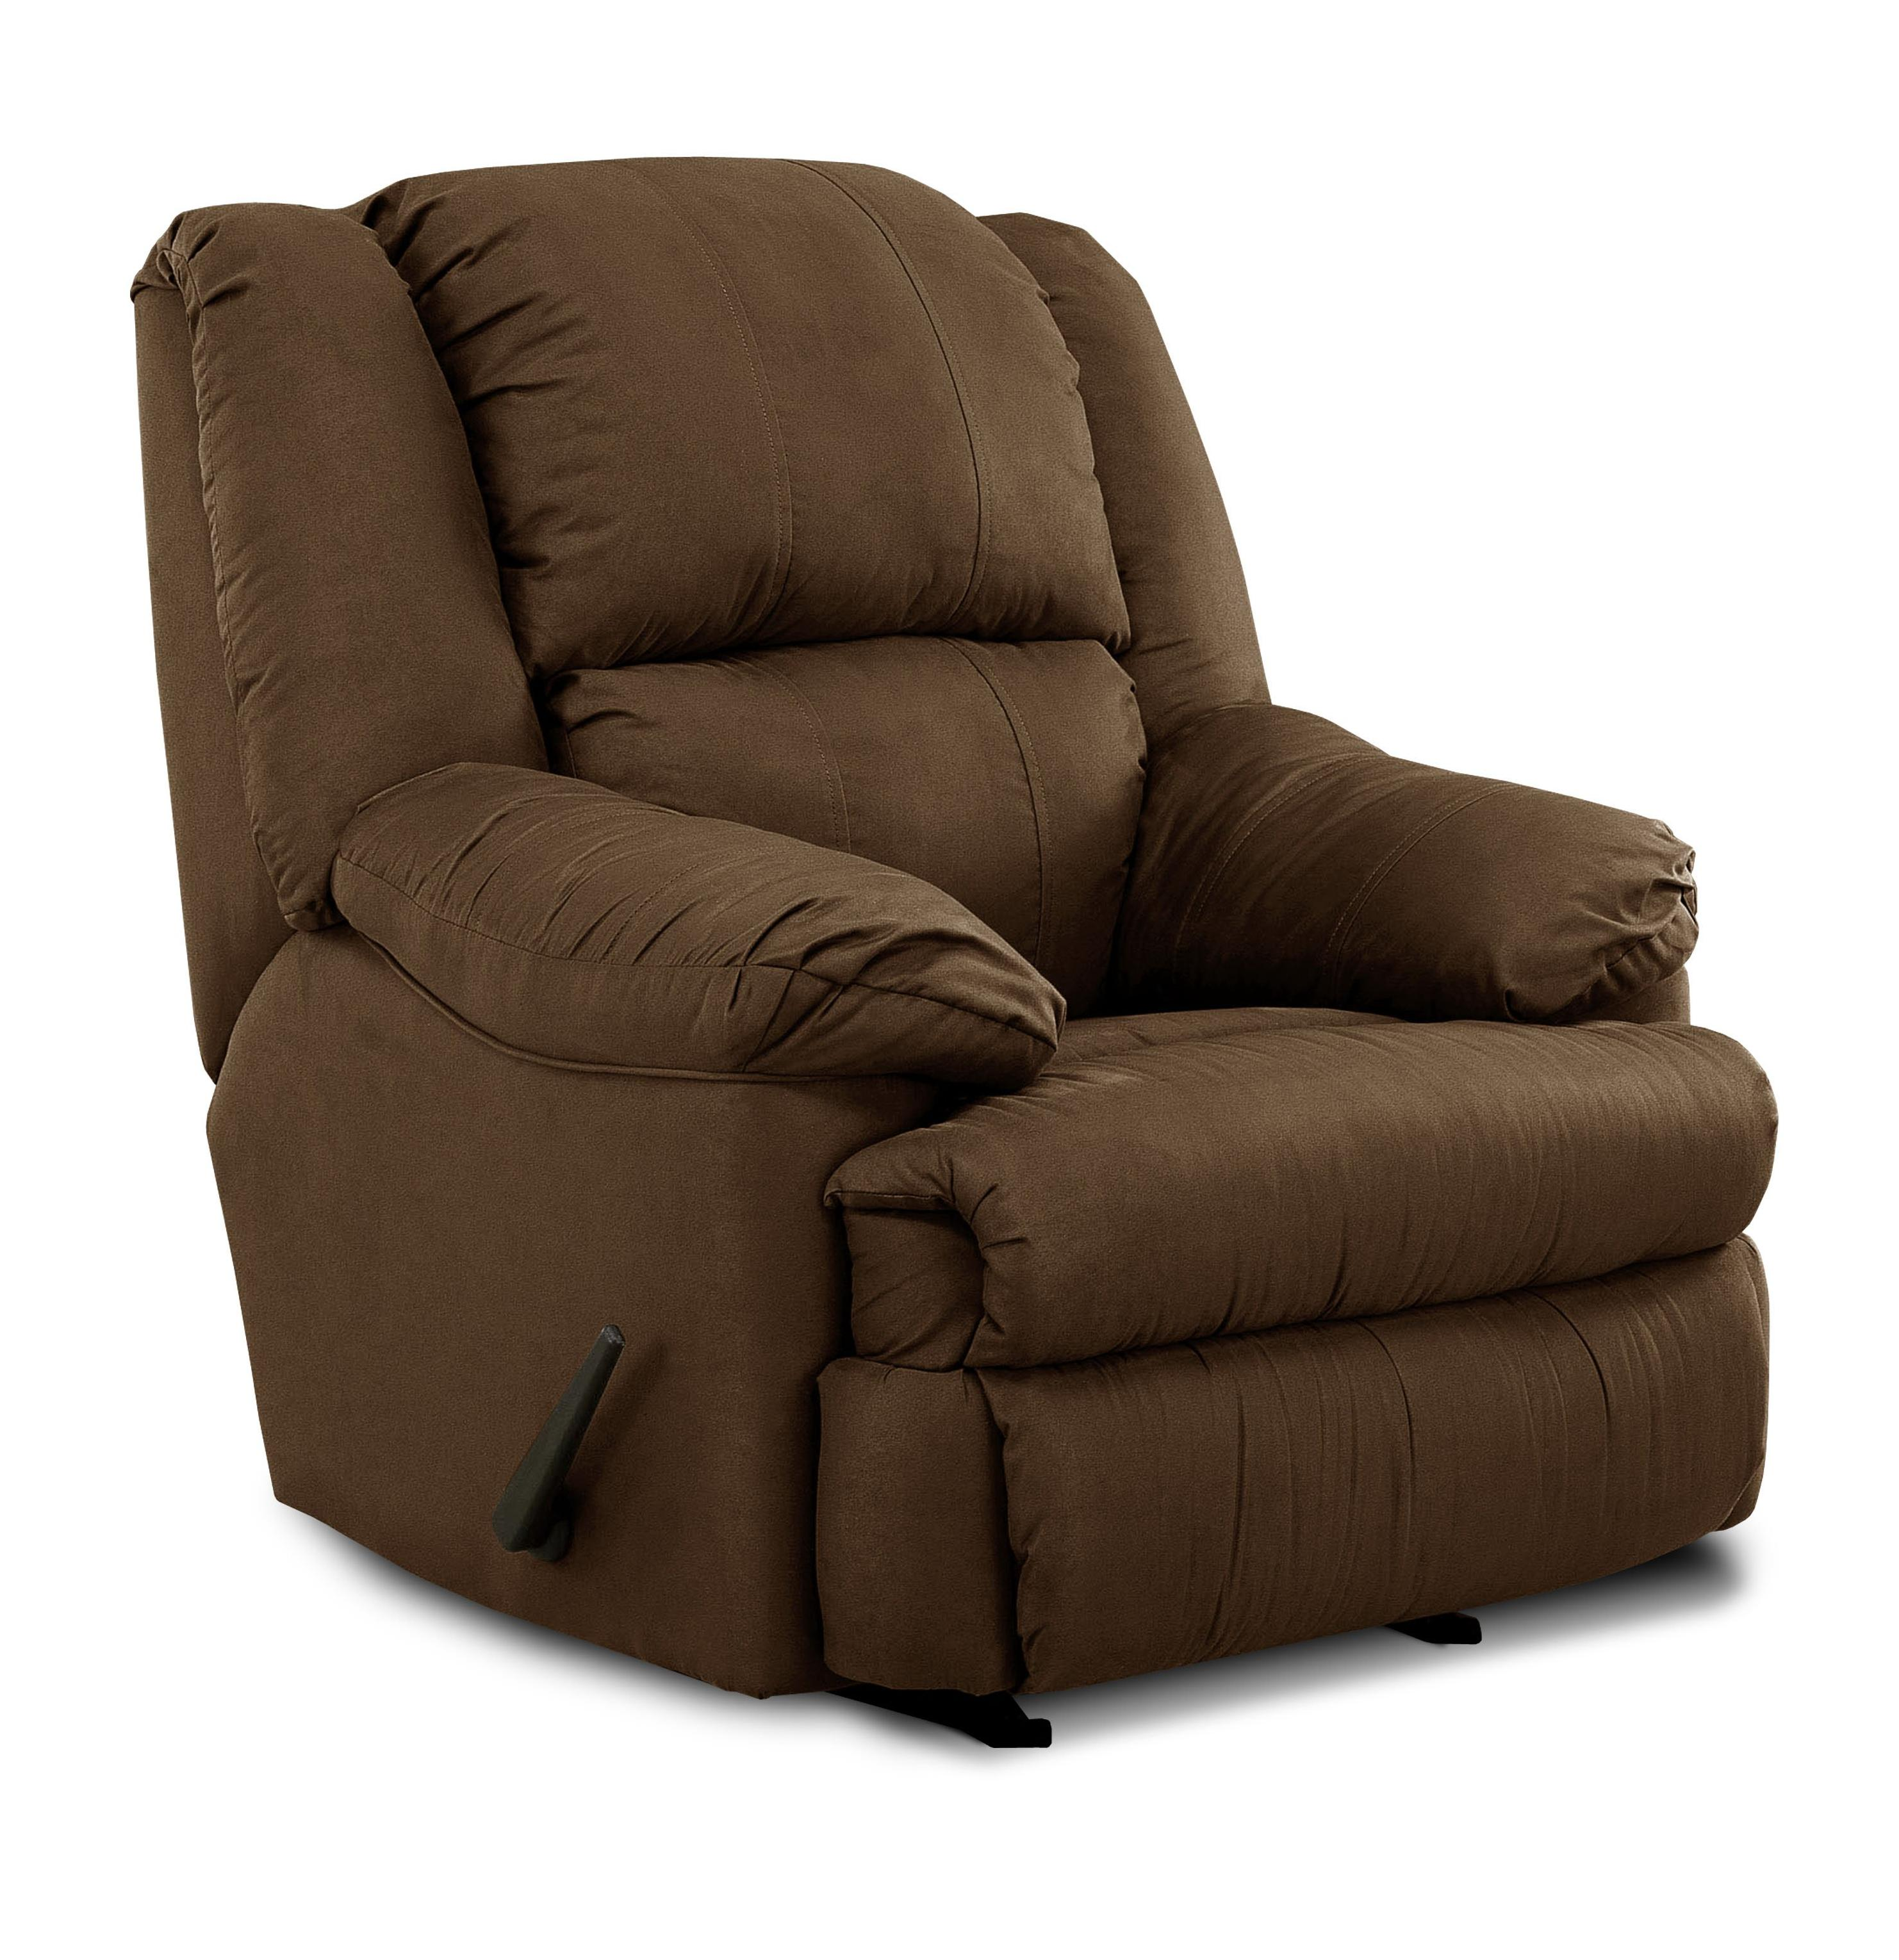 United Furniture Industries 604 Casual Rocker Recliner - Item Number: 604 Rocker Chocolate